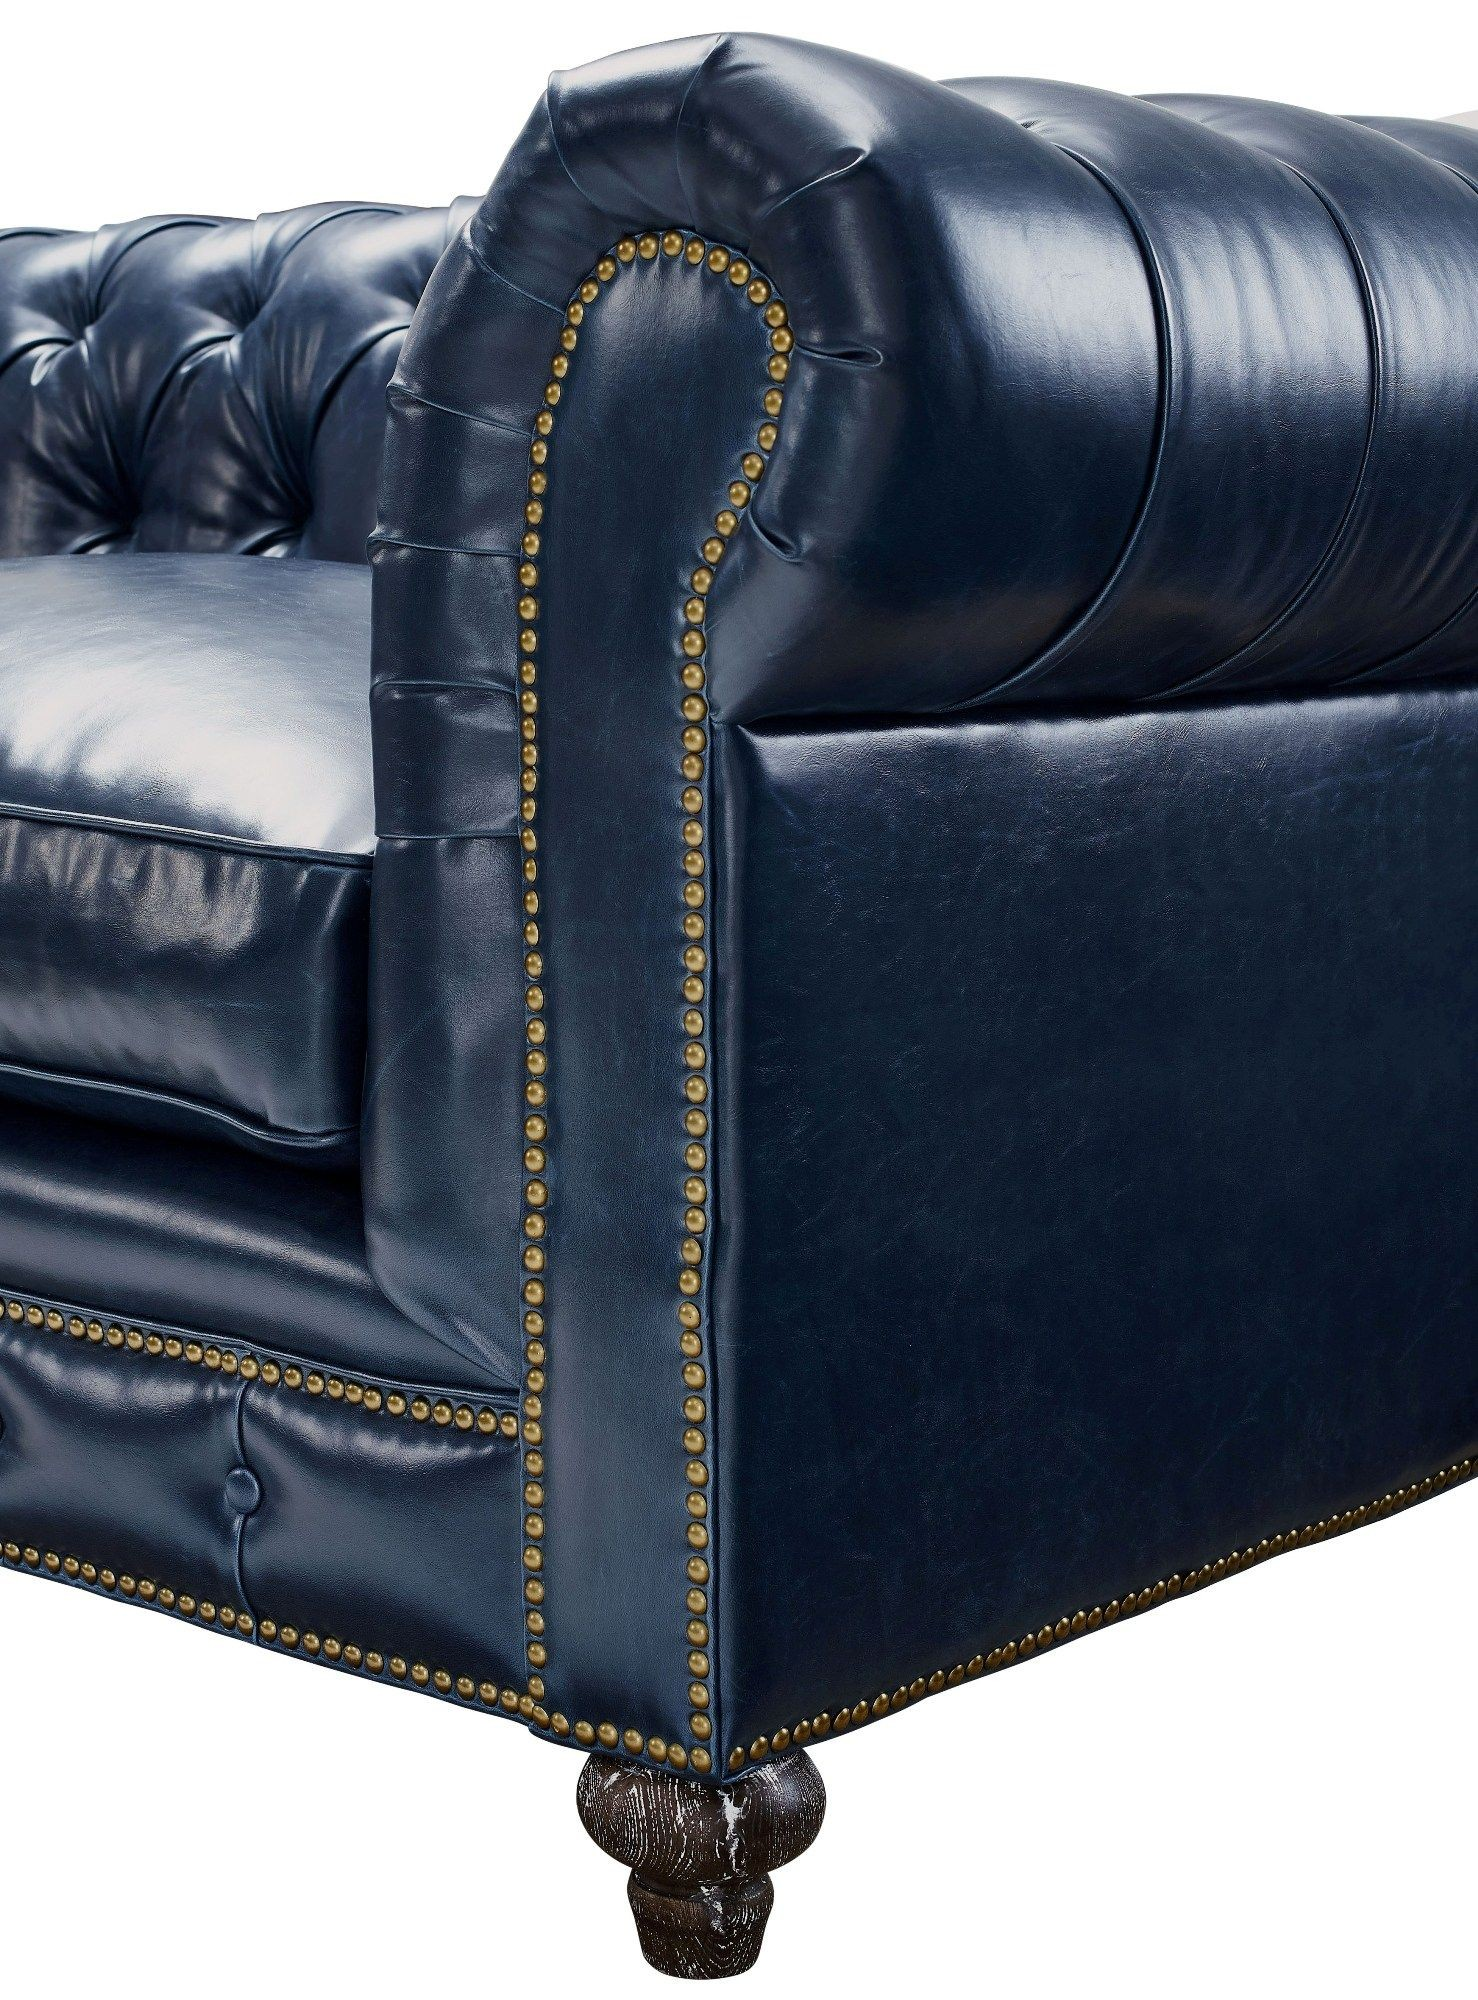 Blue Leather Club Chair Durango Rustic Blue Leather Club Chair From Tov C45